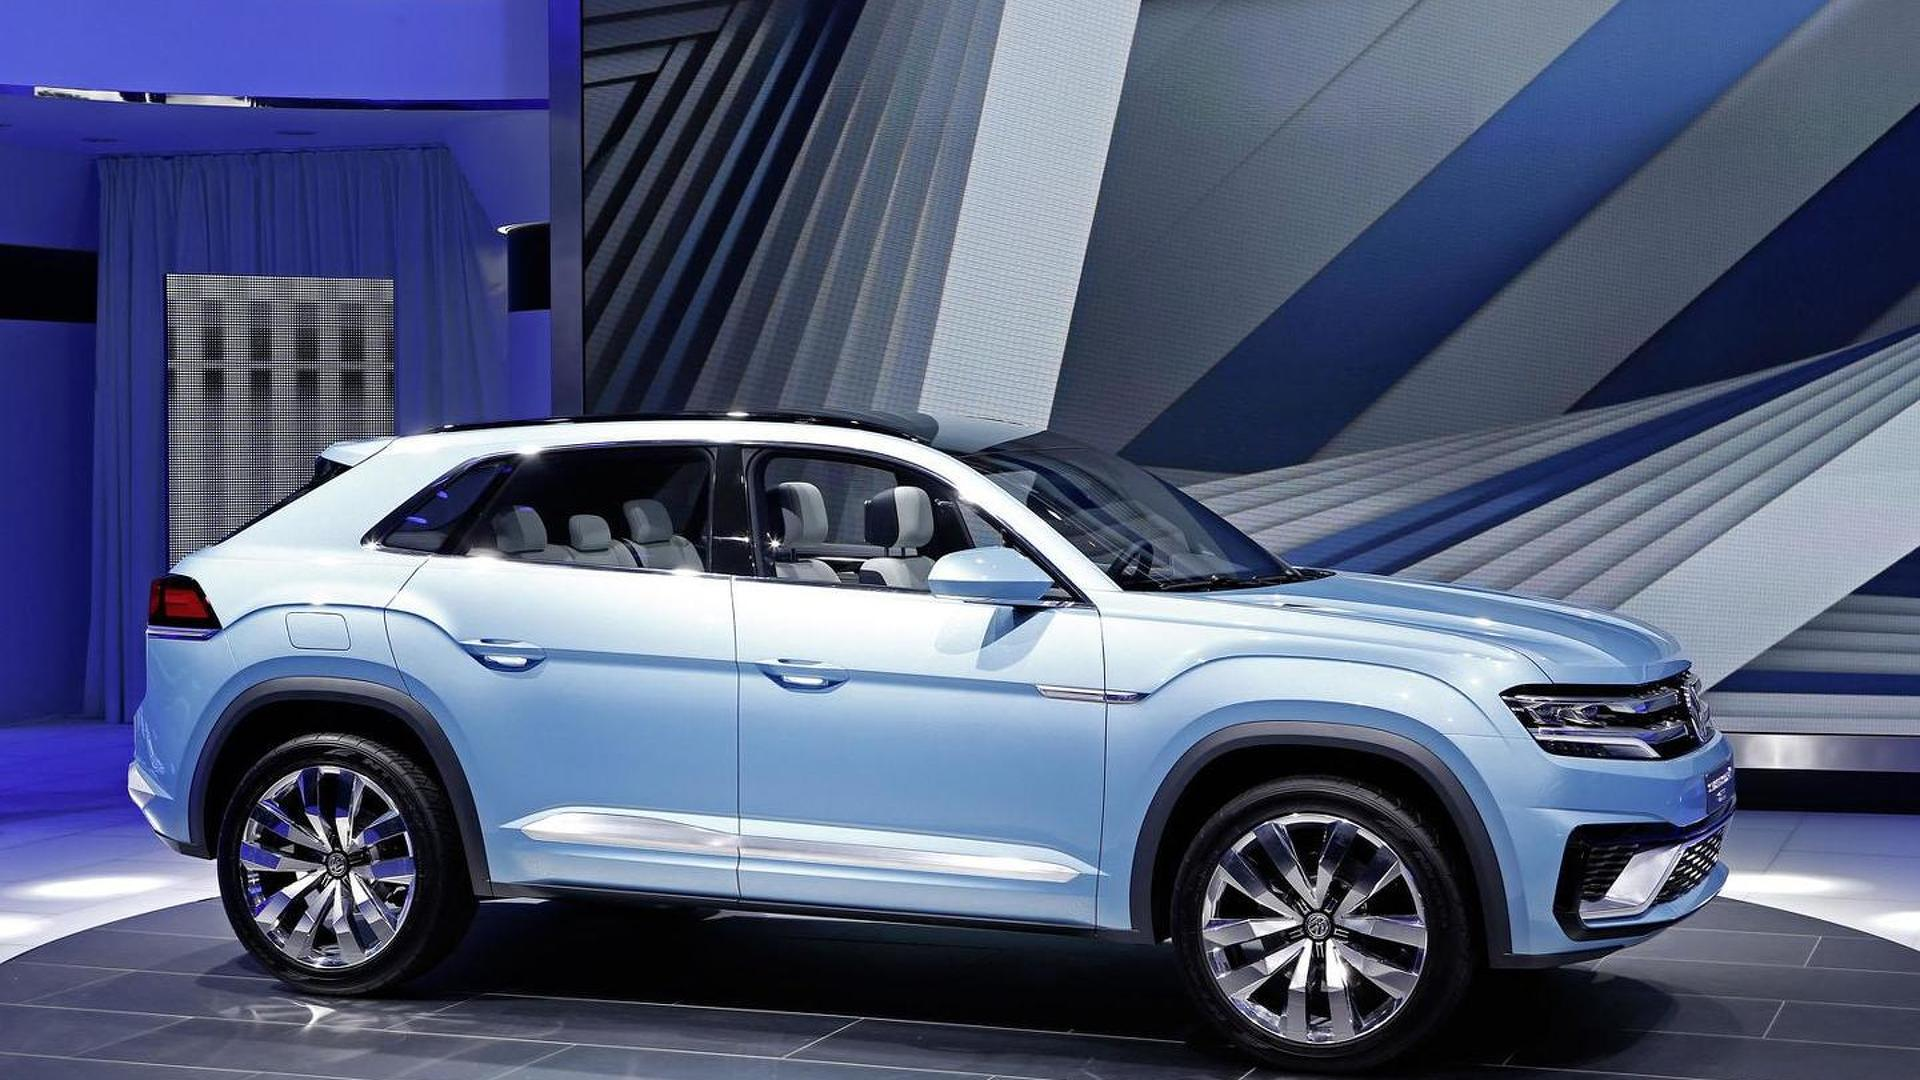 Vw Cross Coupe Gte Release Date >> Volkswagen Cross Coupe Gte Concept Unveiled